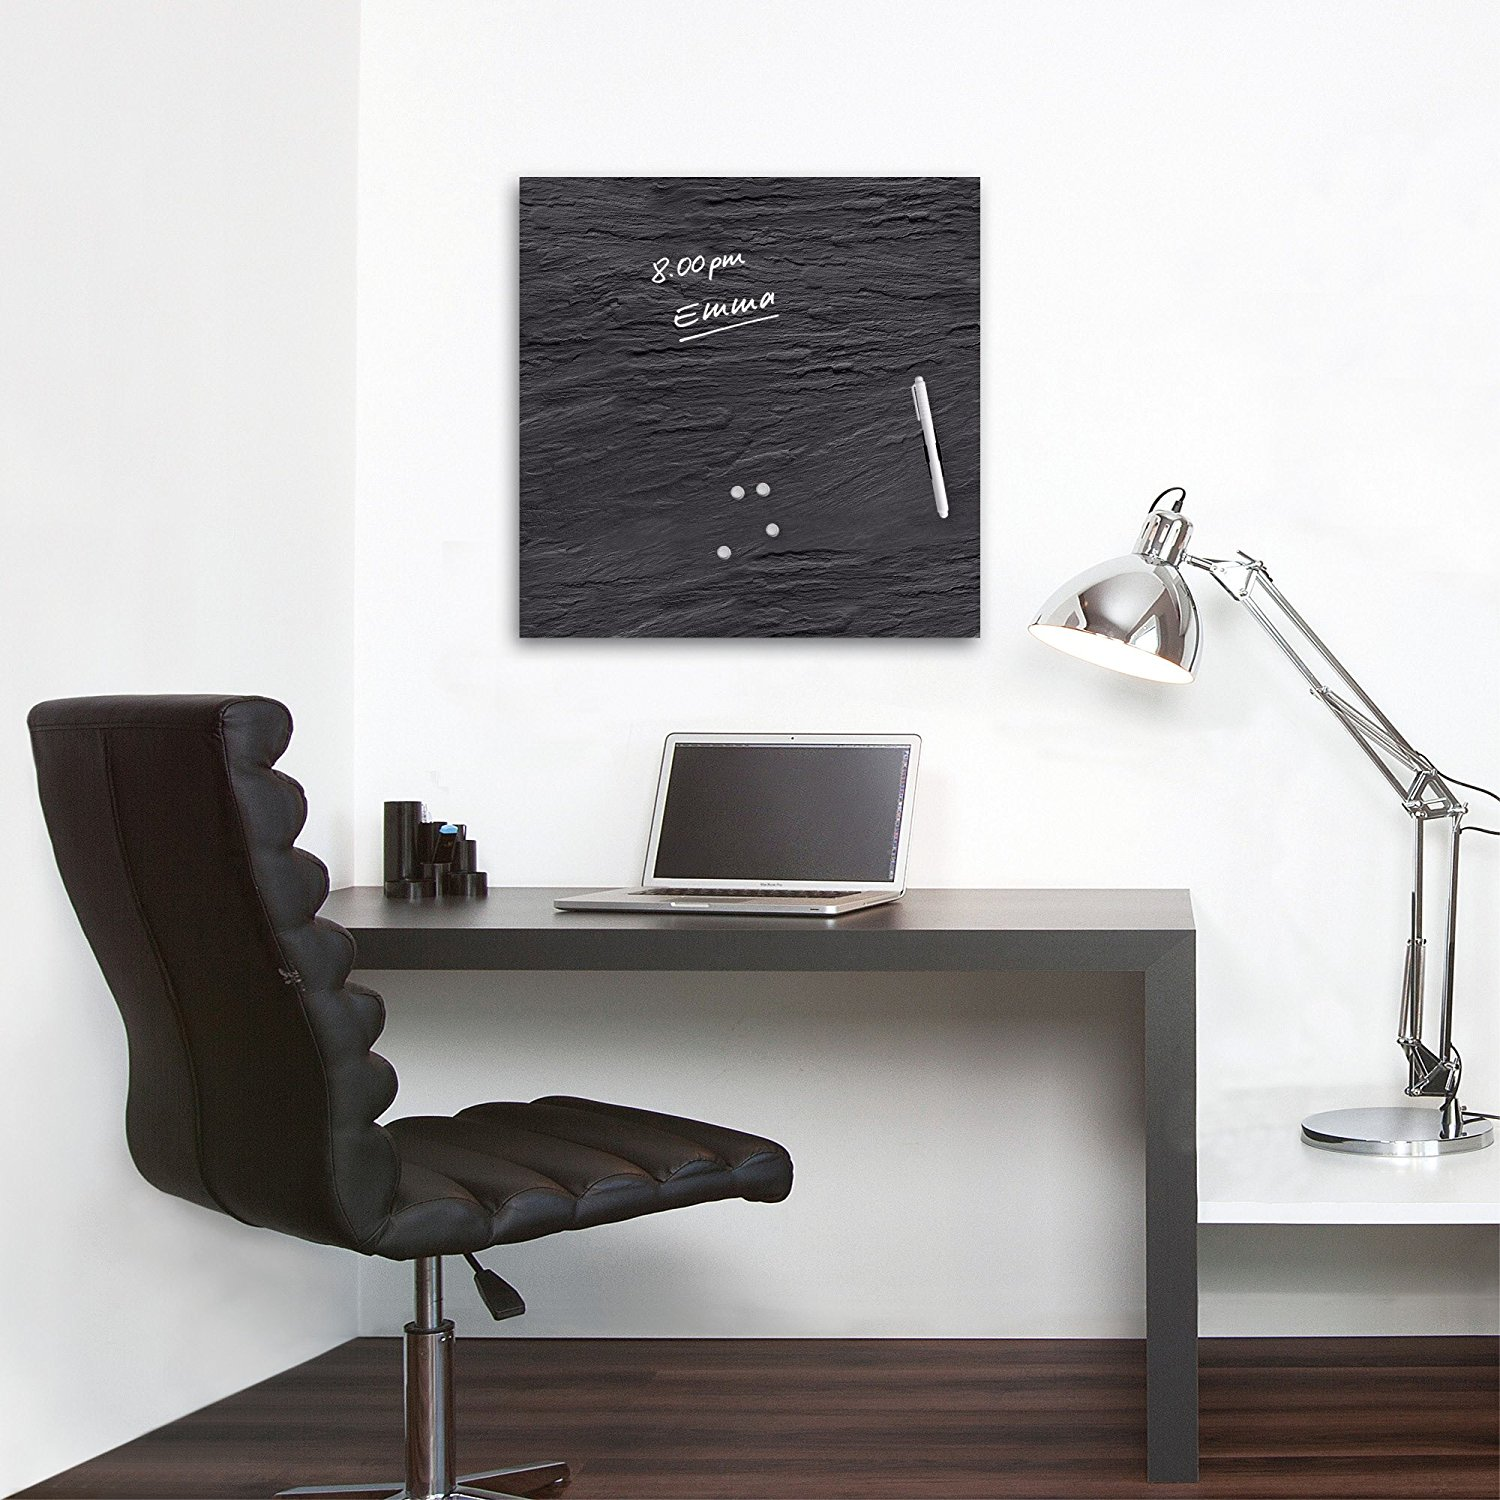 glas magnettafel 50x50 schiefer magnete stift memoboard magnetwand pinnwand ebay. Black Bedroom Furniture Sets. Home Design Ideas